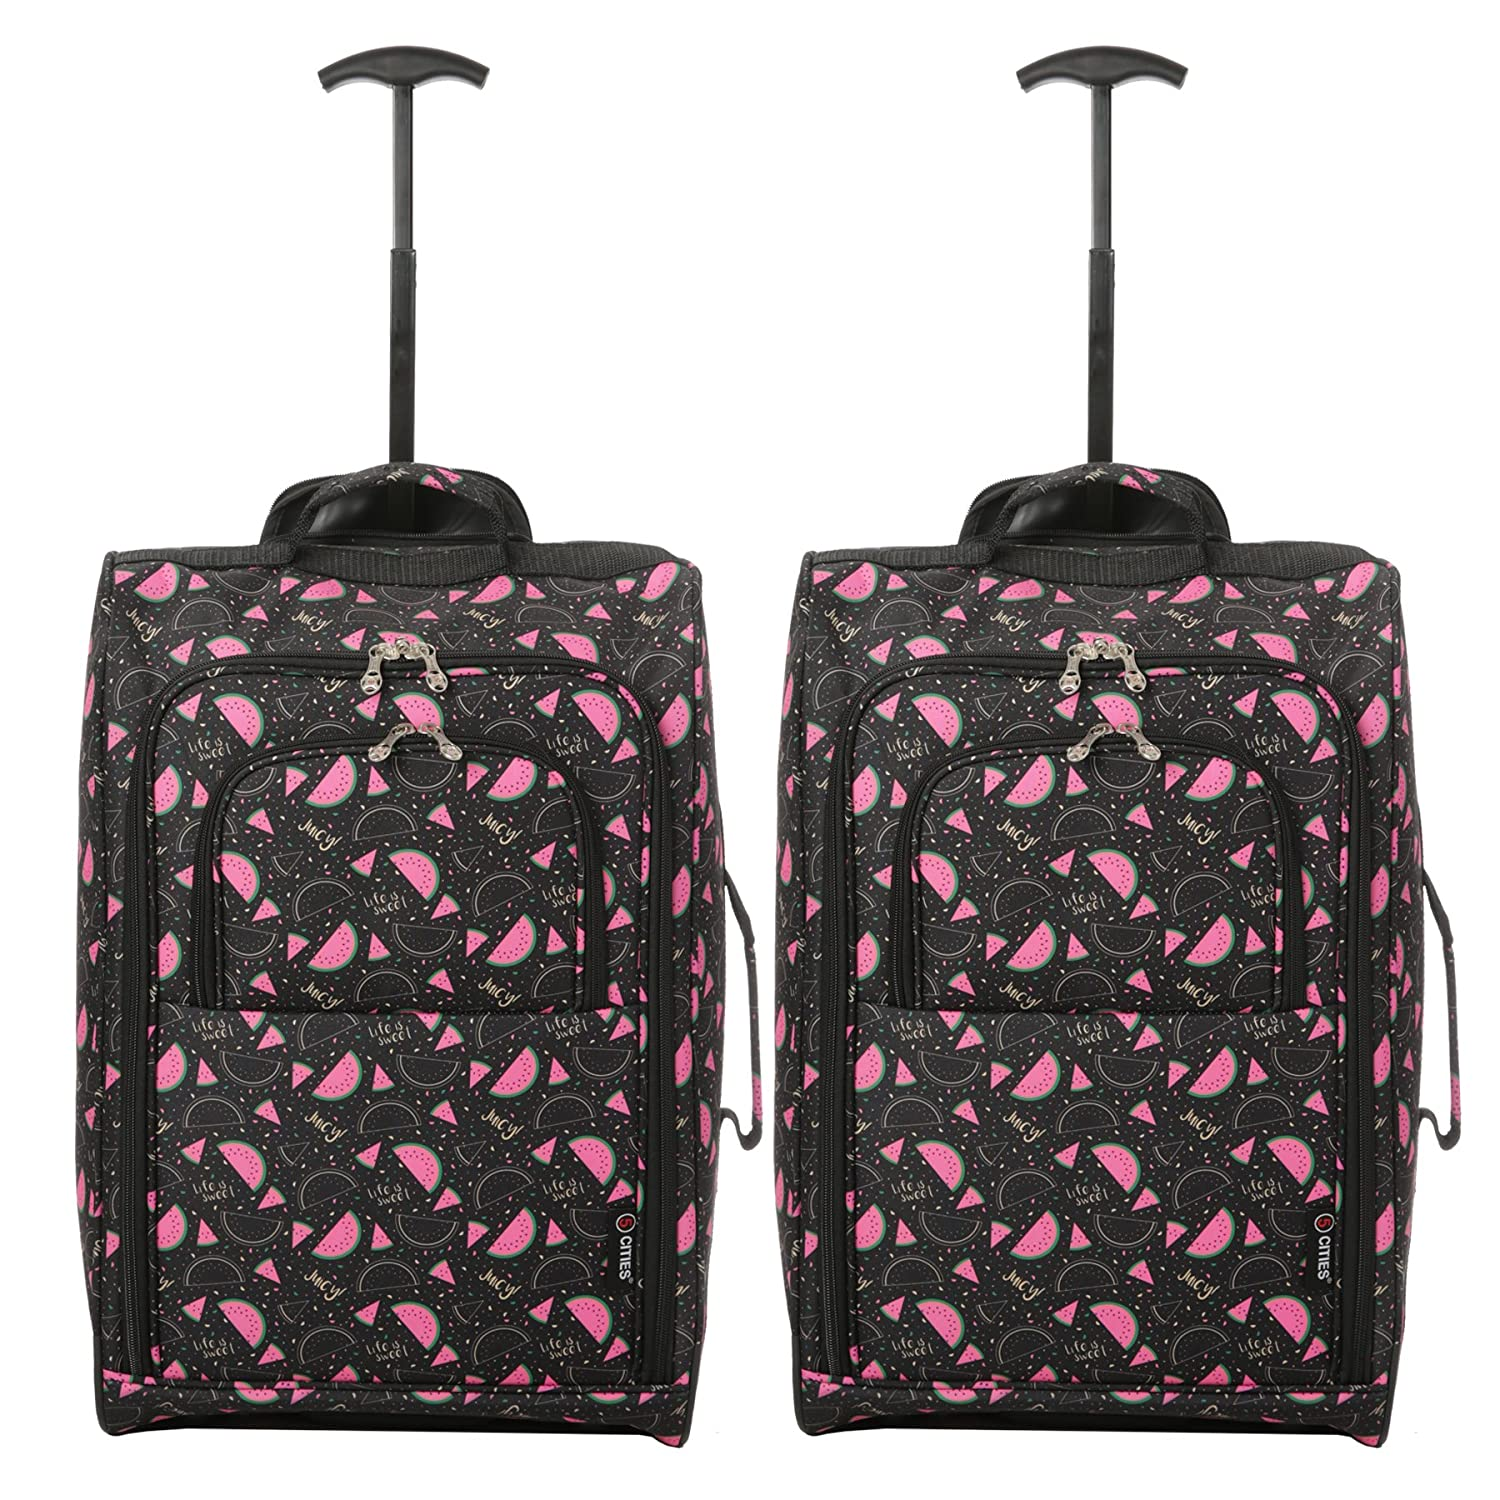 c5beda9a7 Set of 2 Super Lightweight Cabin Approved Luggage Travel Wheely Suitcase  Wheeled Bags Bag (Black Watermelon). by 5 Cities